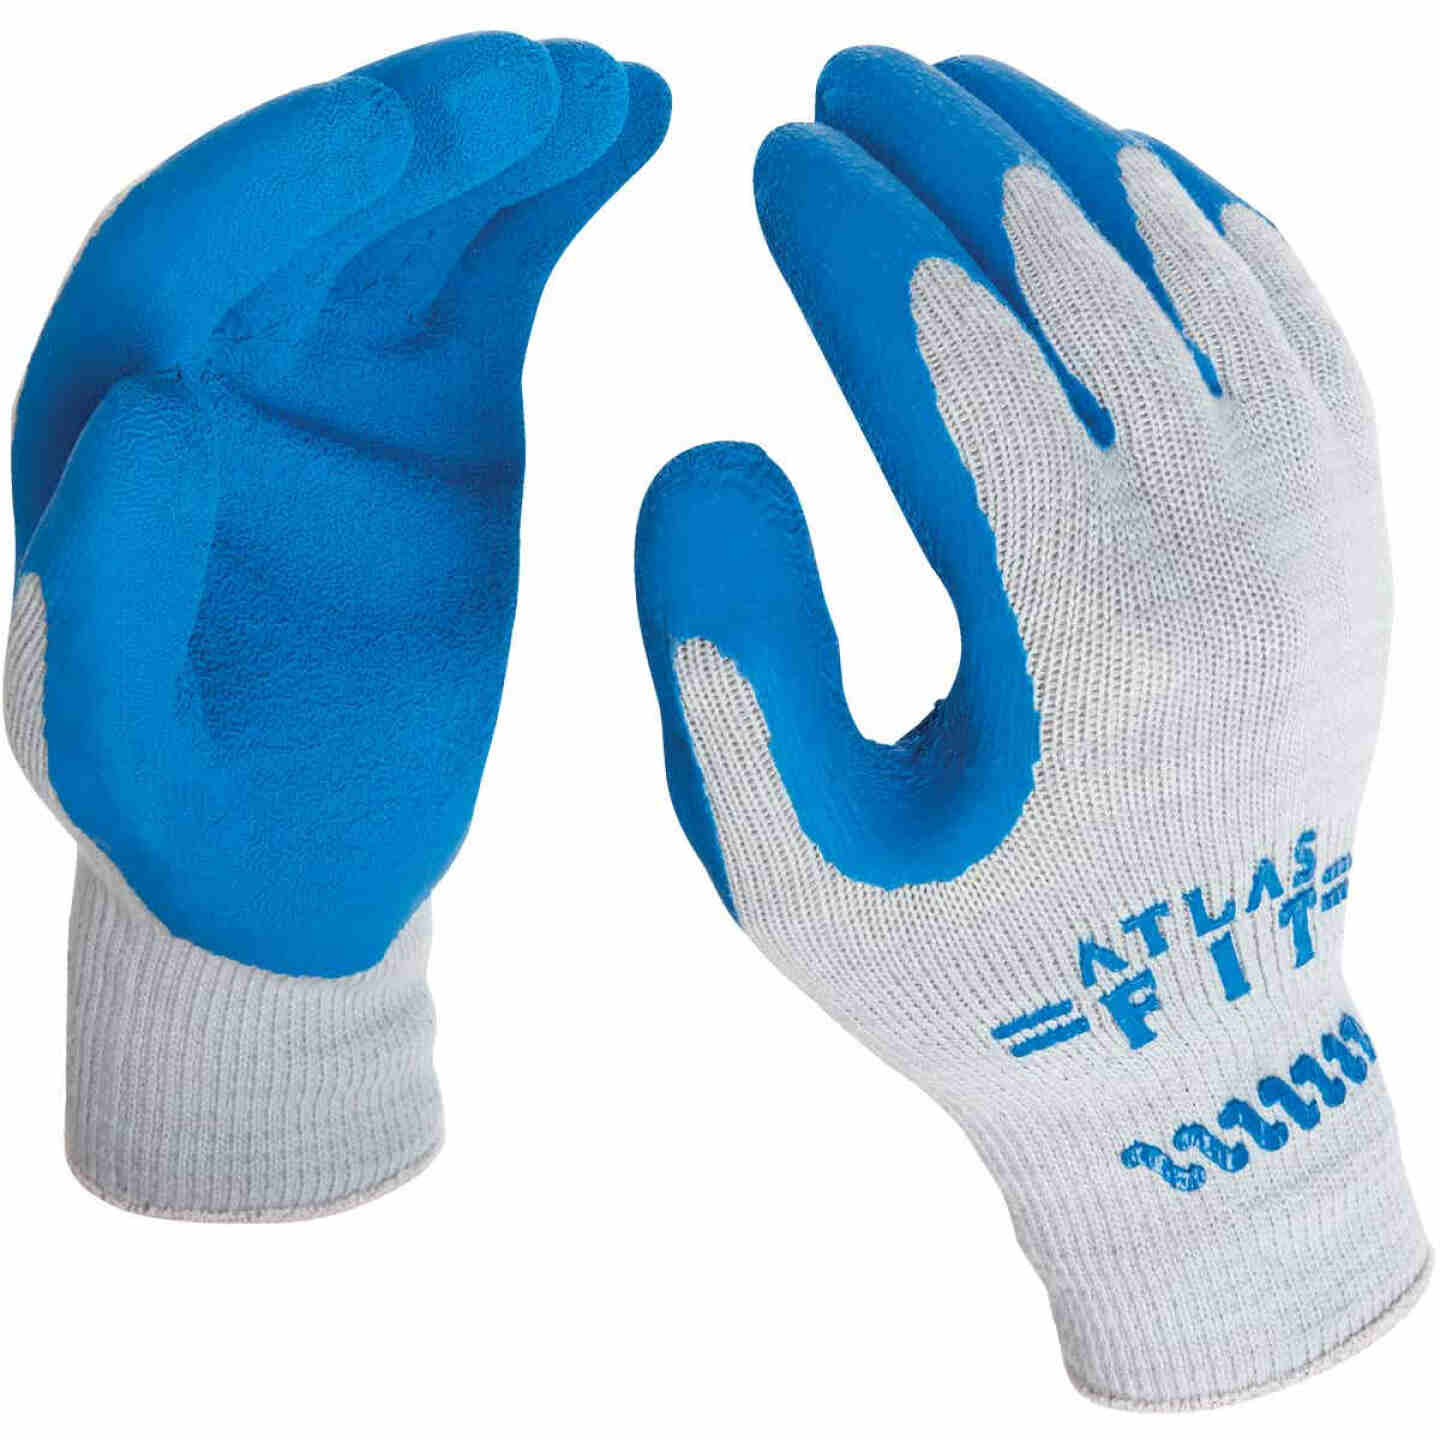 Showa Atlas Men's Small Rubber Coated Glove Image 3